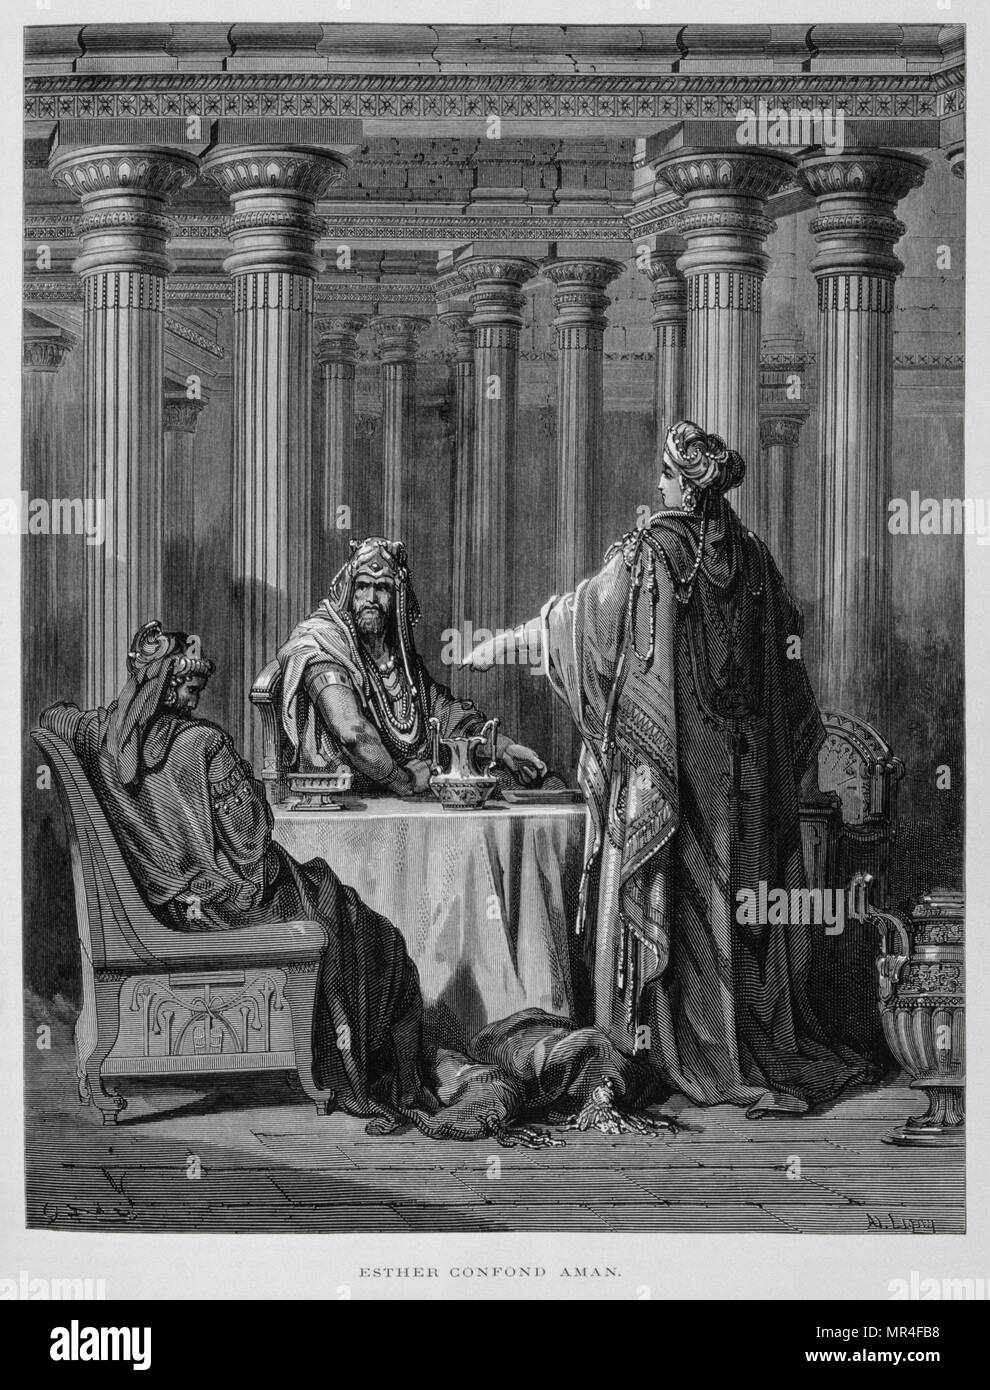 Haman denounced by Queen Esther, Illustration from the Dore Bible 1866. In 1866, the French artist and illustrator Gustave Dore (1832–1883), published a series of 241 wood engravings for a new deluxe edition of the 1843 French translation of the Vulgate Bible, popularly known as the Bible de Tours. This new edition was known as La Grande Bible de Tours and its illustrations were immensely successful. - Stock Image